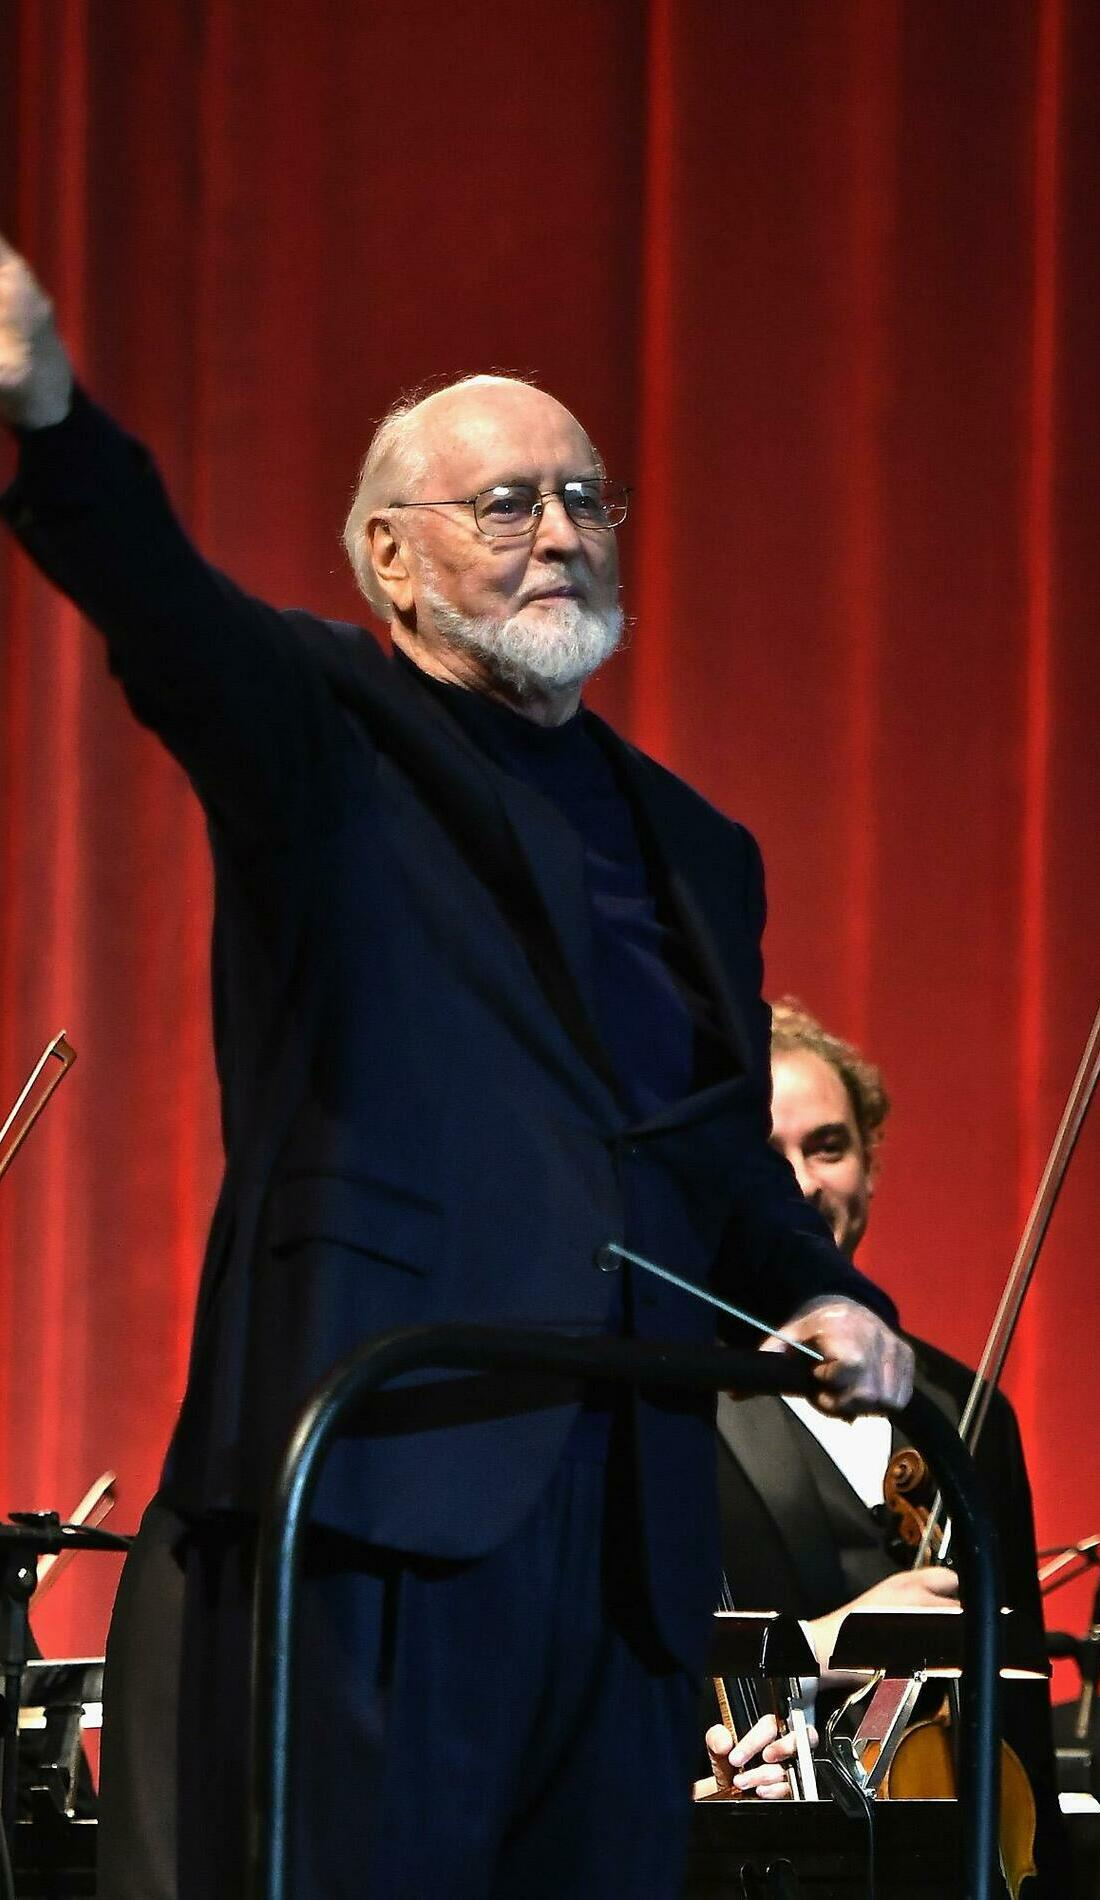 A John Williams live event